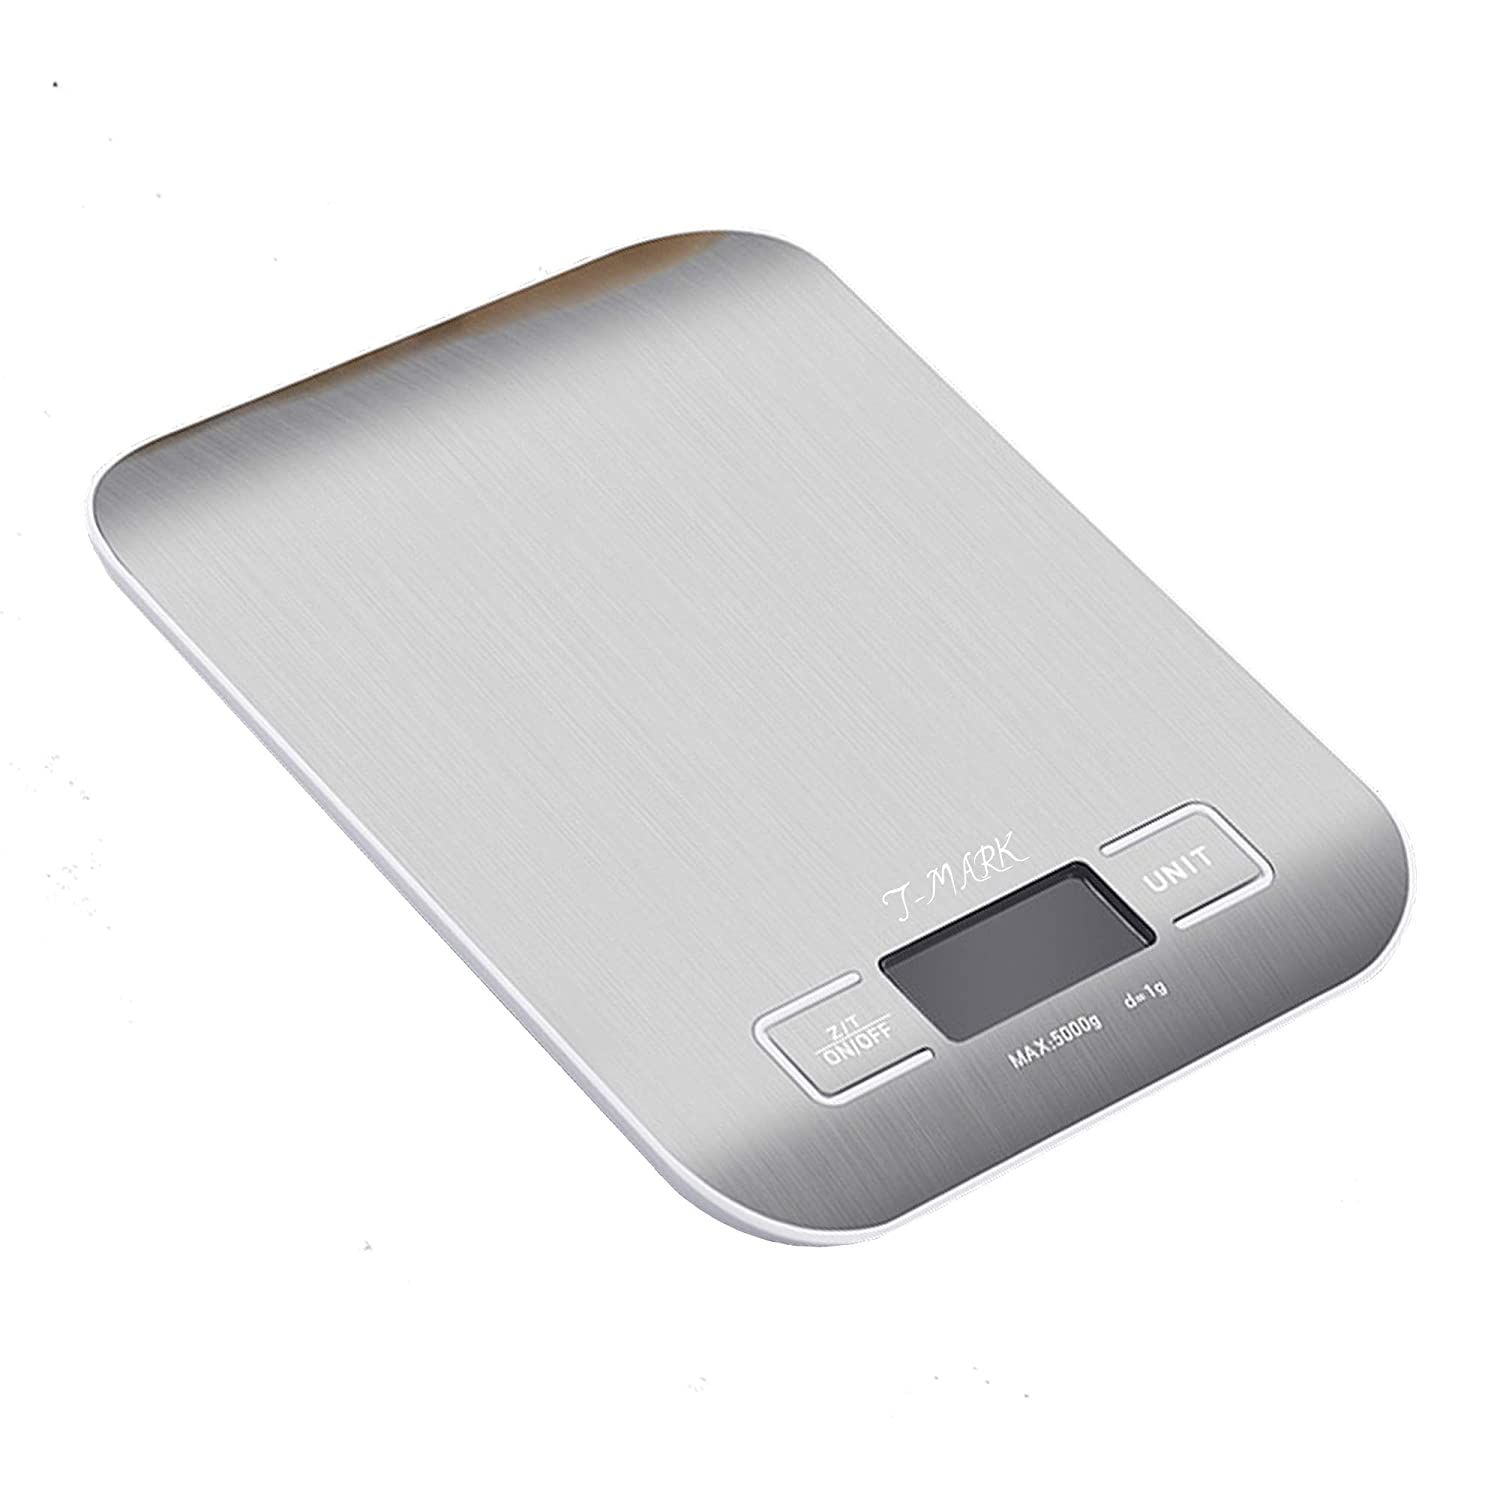 T-mark Digital Kitchen Scale Food Scale,Food Grade Balance Scale 0.04oz/1g Increment,11 lb/5 kg,Backlit LCD Display Function(Batteries Included AAAX2),Stainless Steel